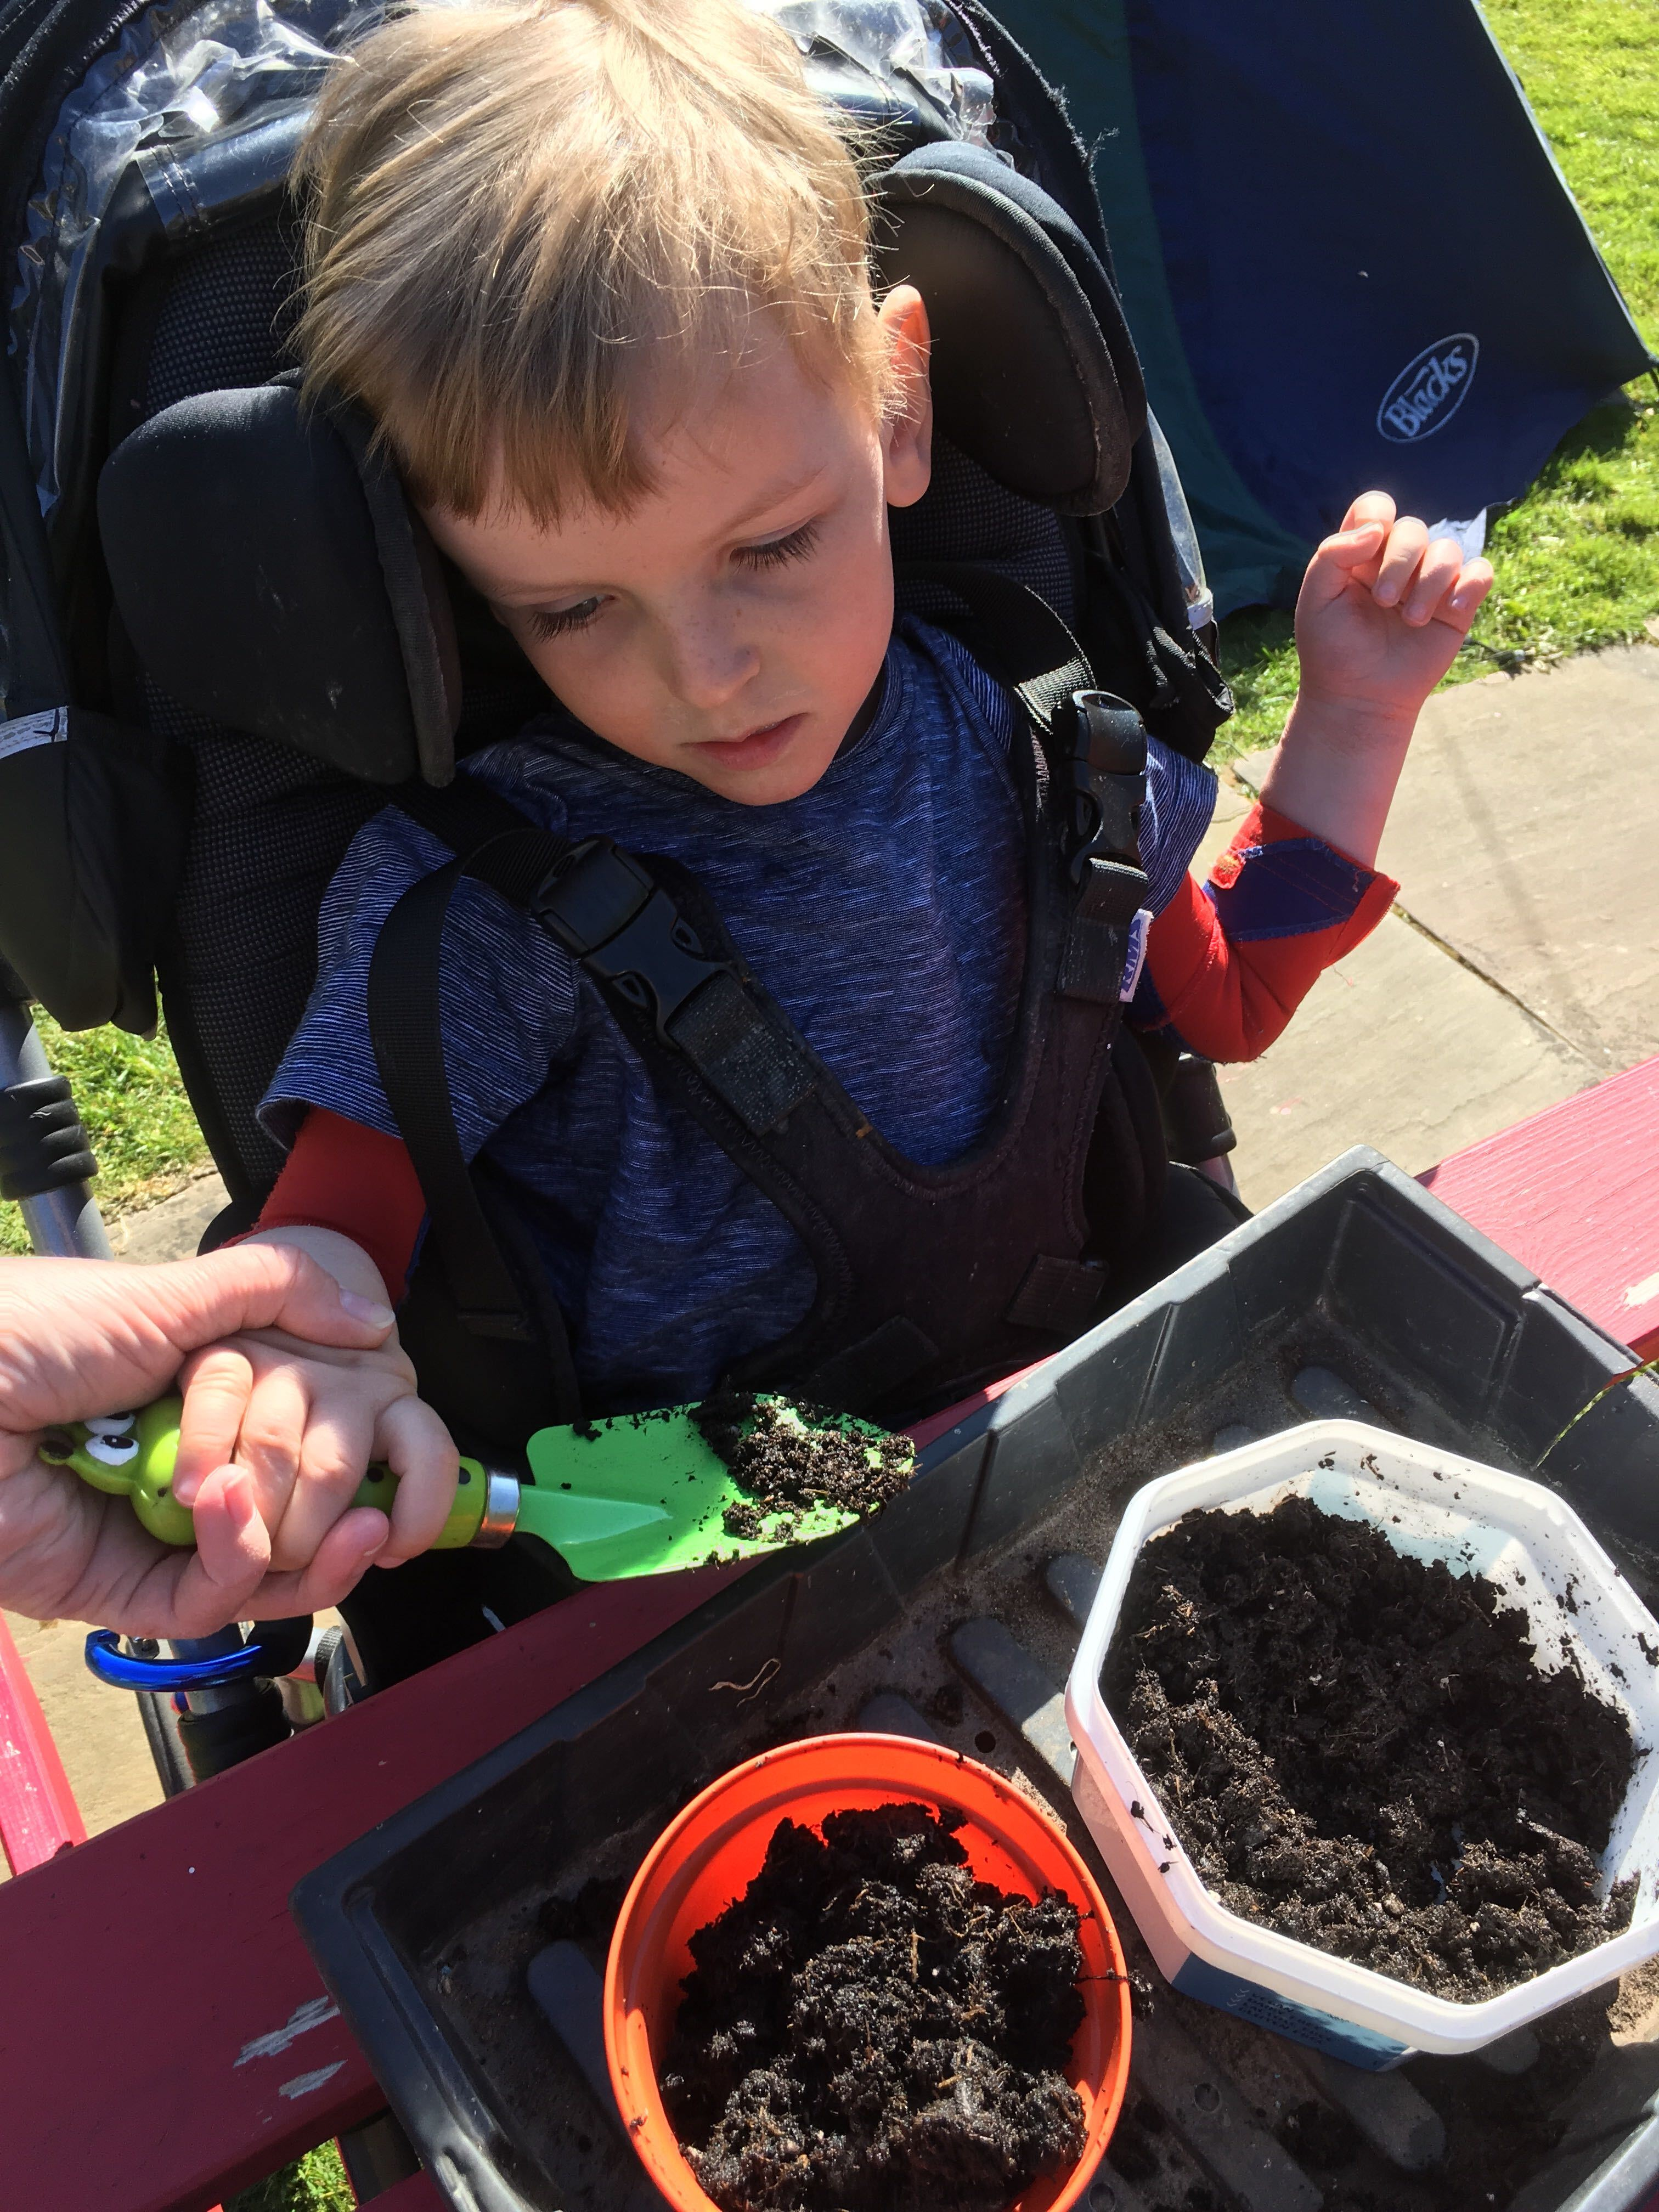 Photo of Quinns holding a green trowel moving soil from a plastic container into a plant pot guided by an adult hand